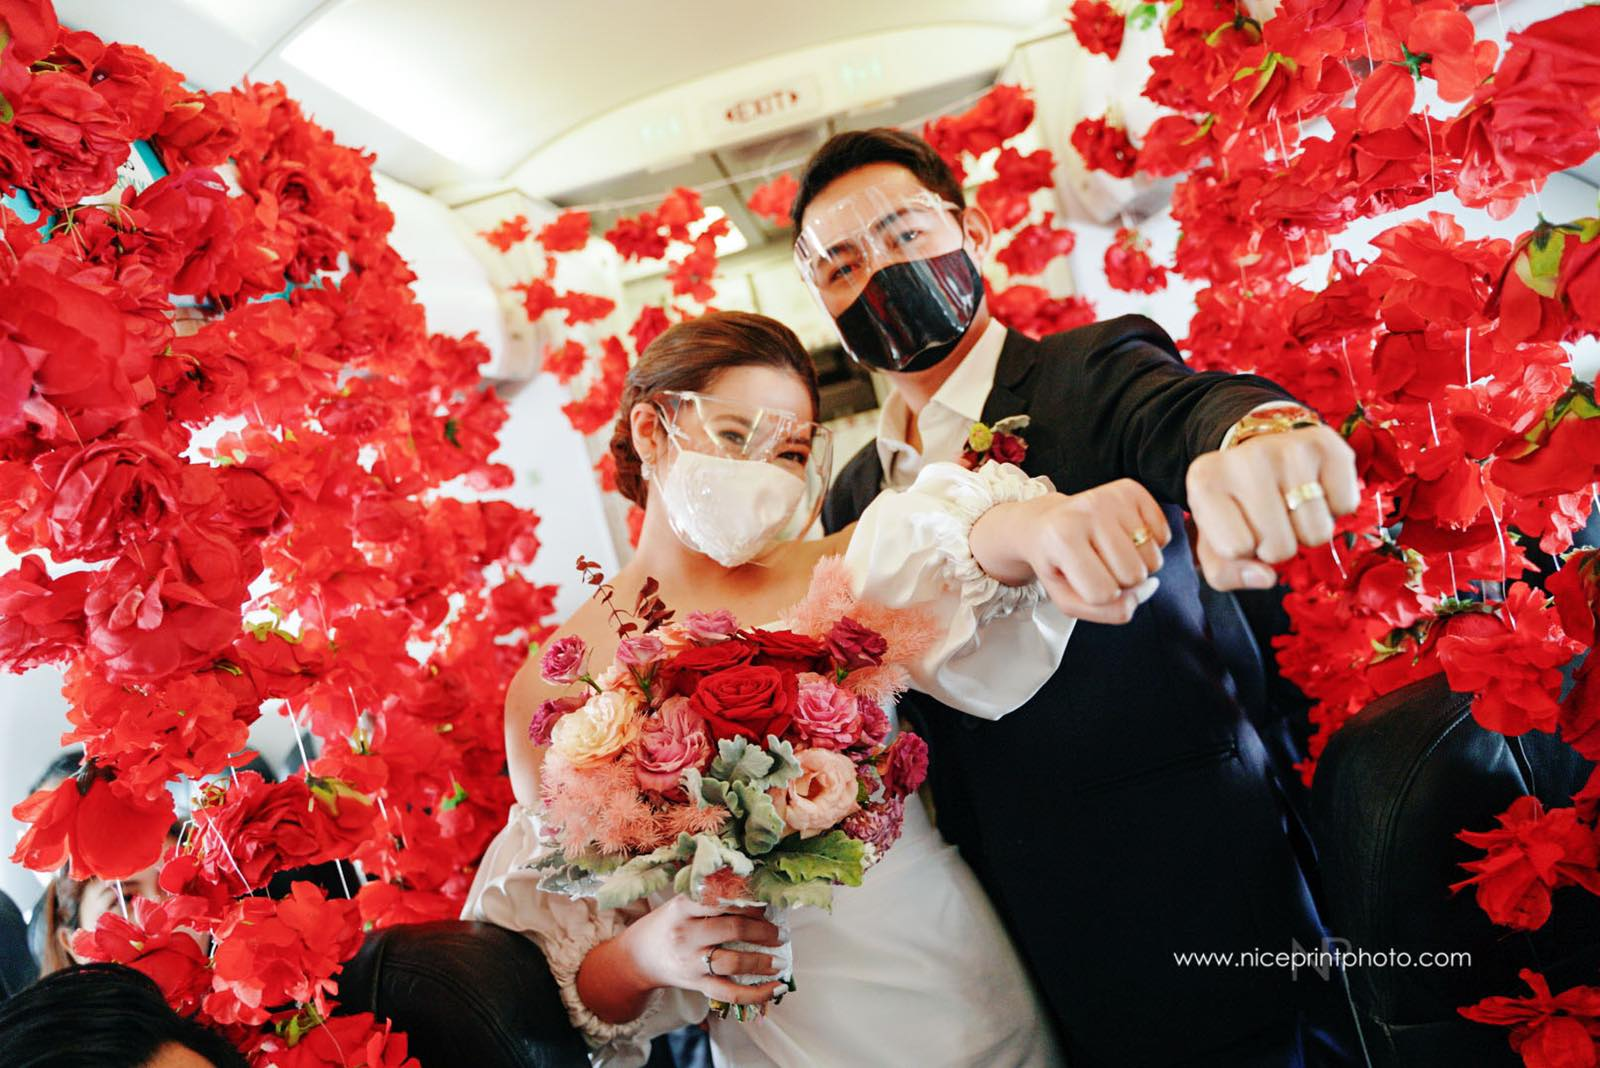 wedding of two flight attendants during a commercial flight: couple showing their rings